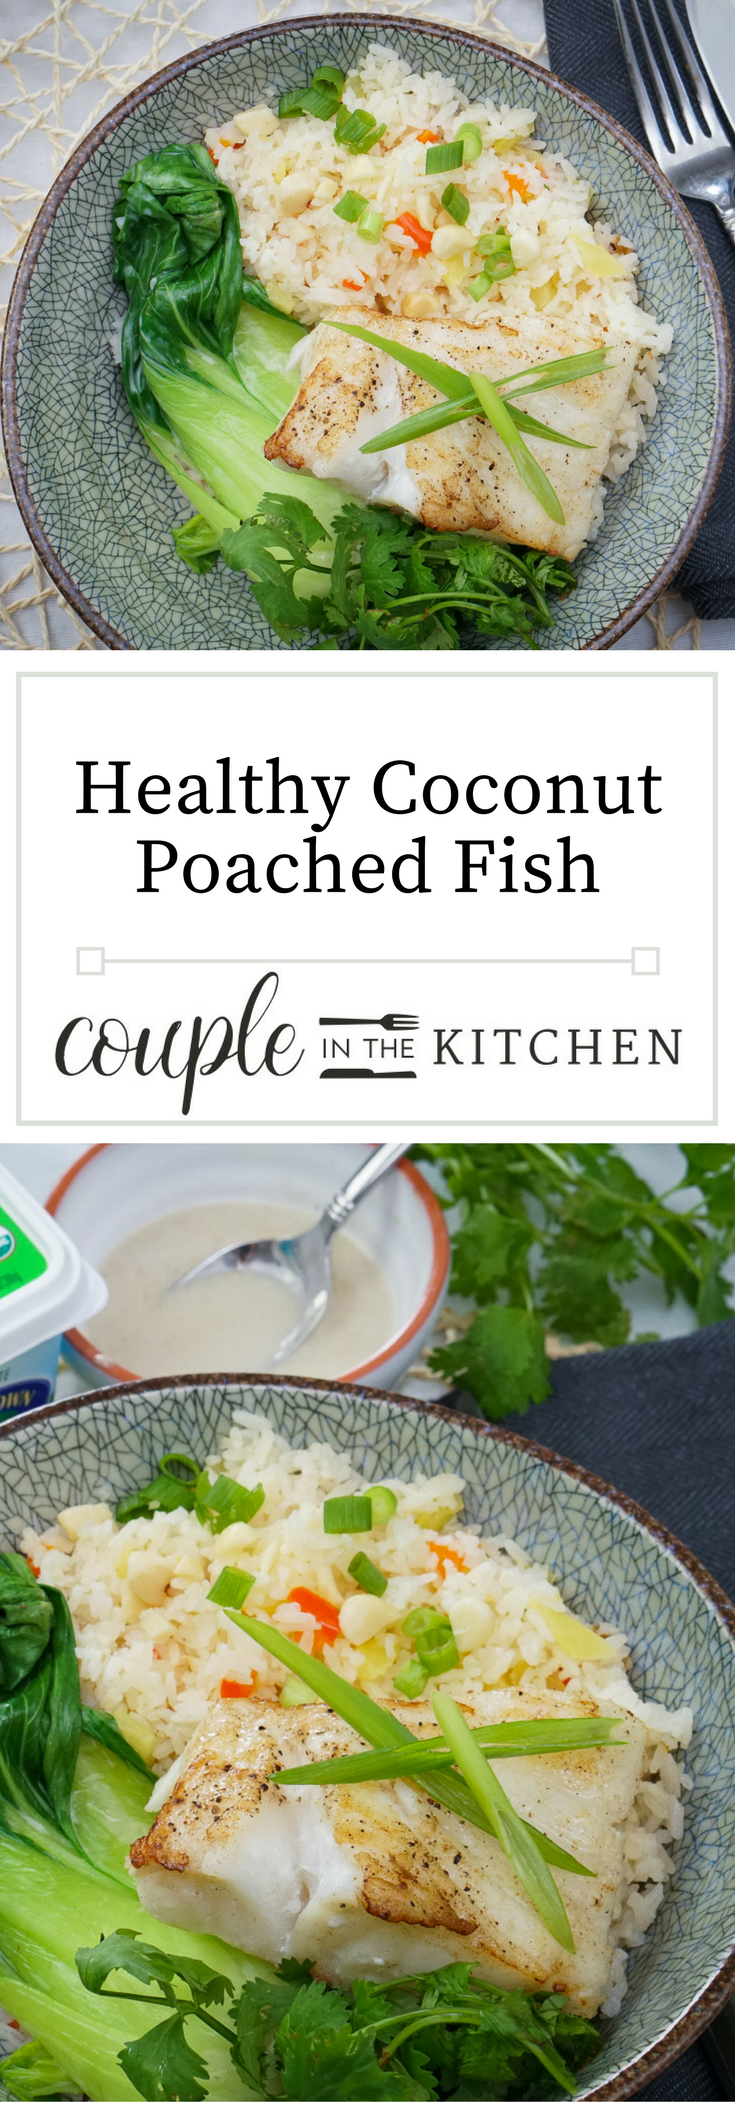 Healthy Coconut Poached Fish | coupleinthekitchen.com